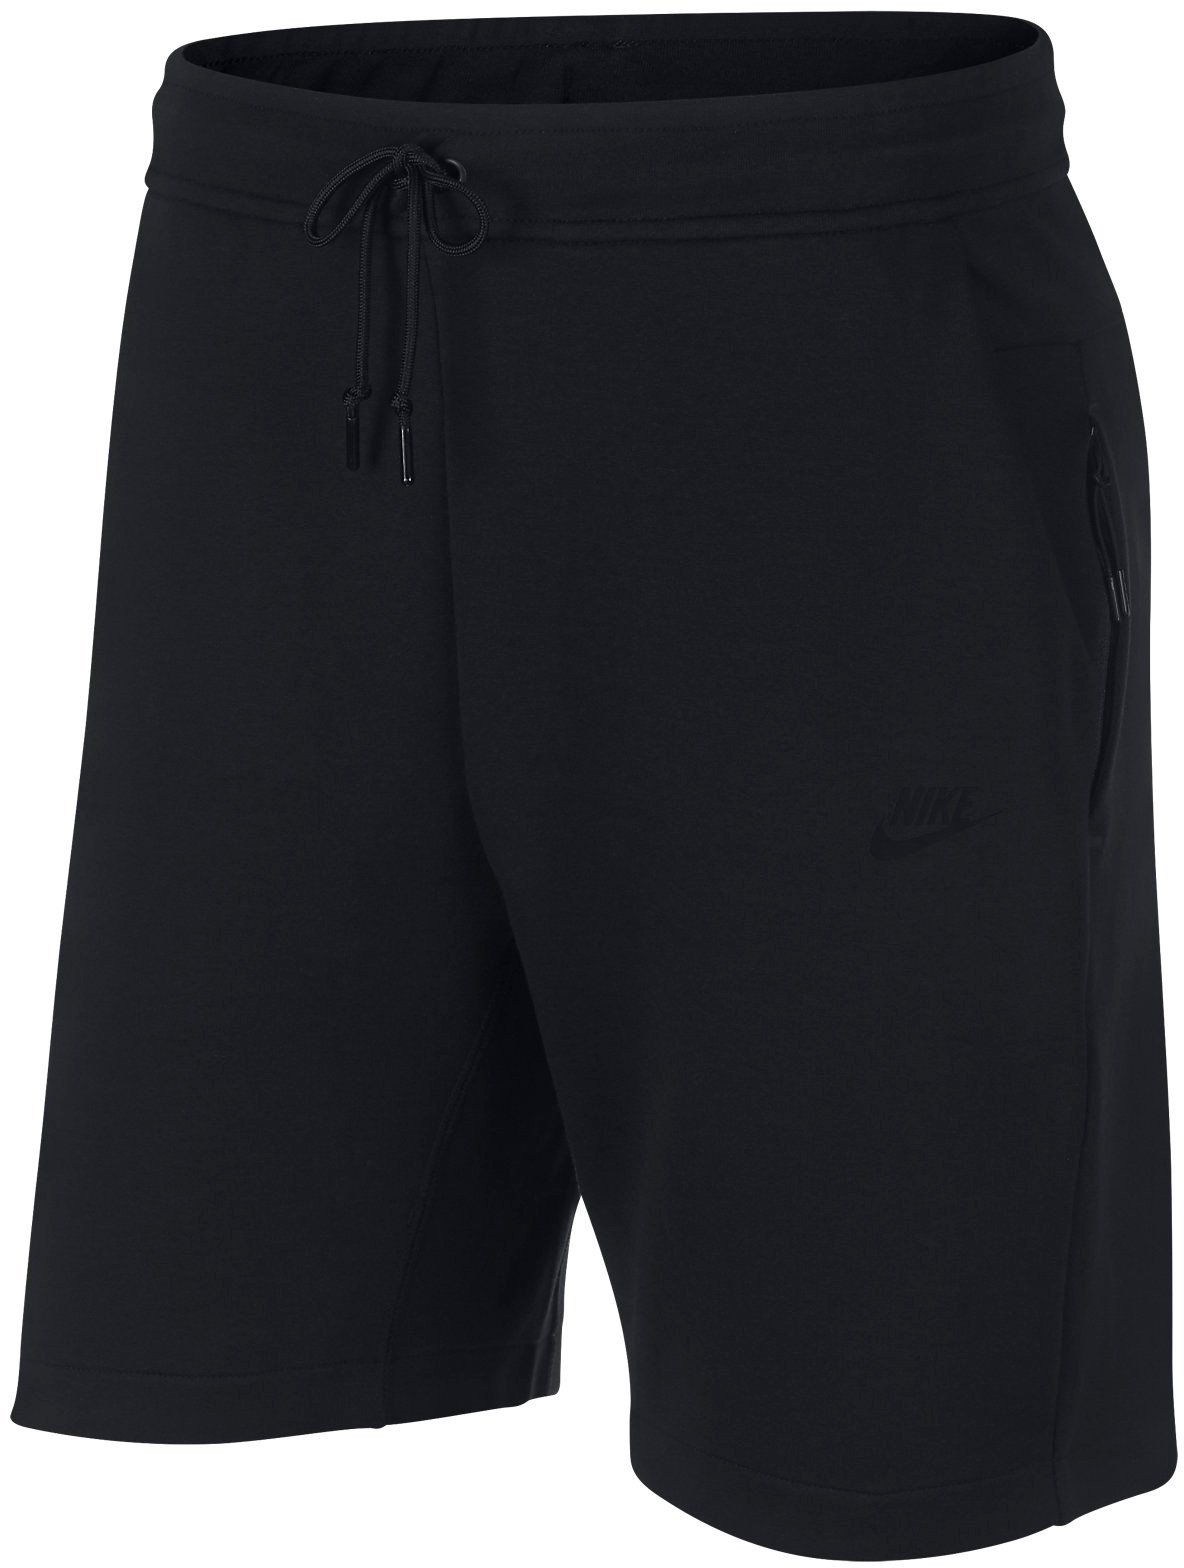 Shorts Nike M NSW TCH FLC SHORT